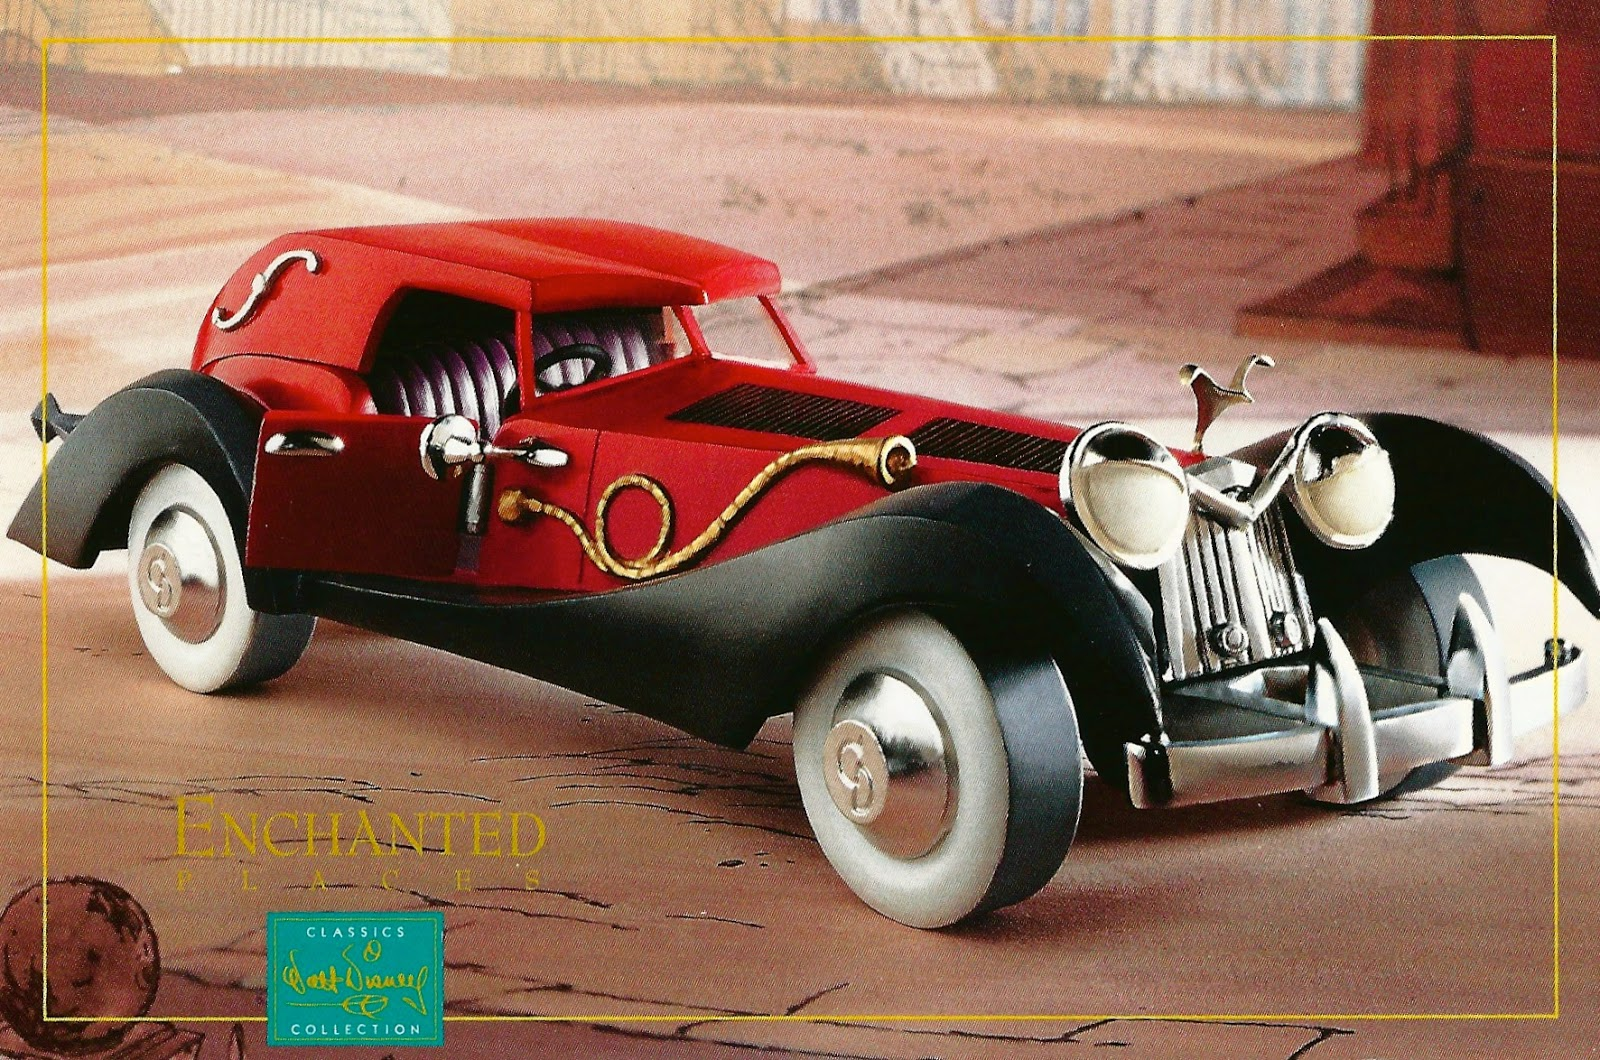 My Favorite Disney Postcards: Cruella DeVil's Car